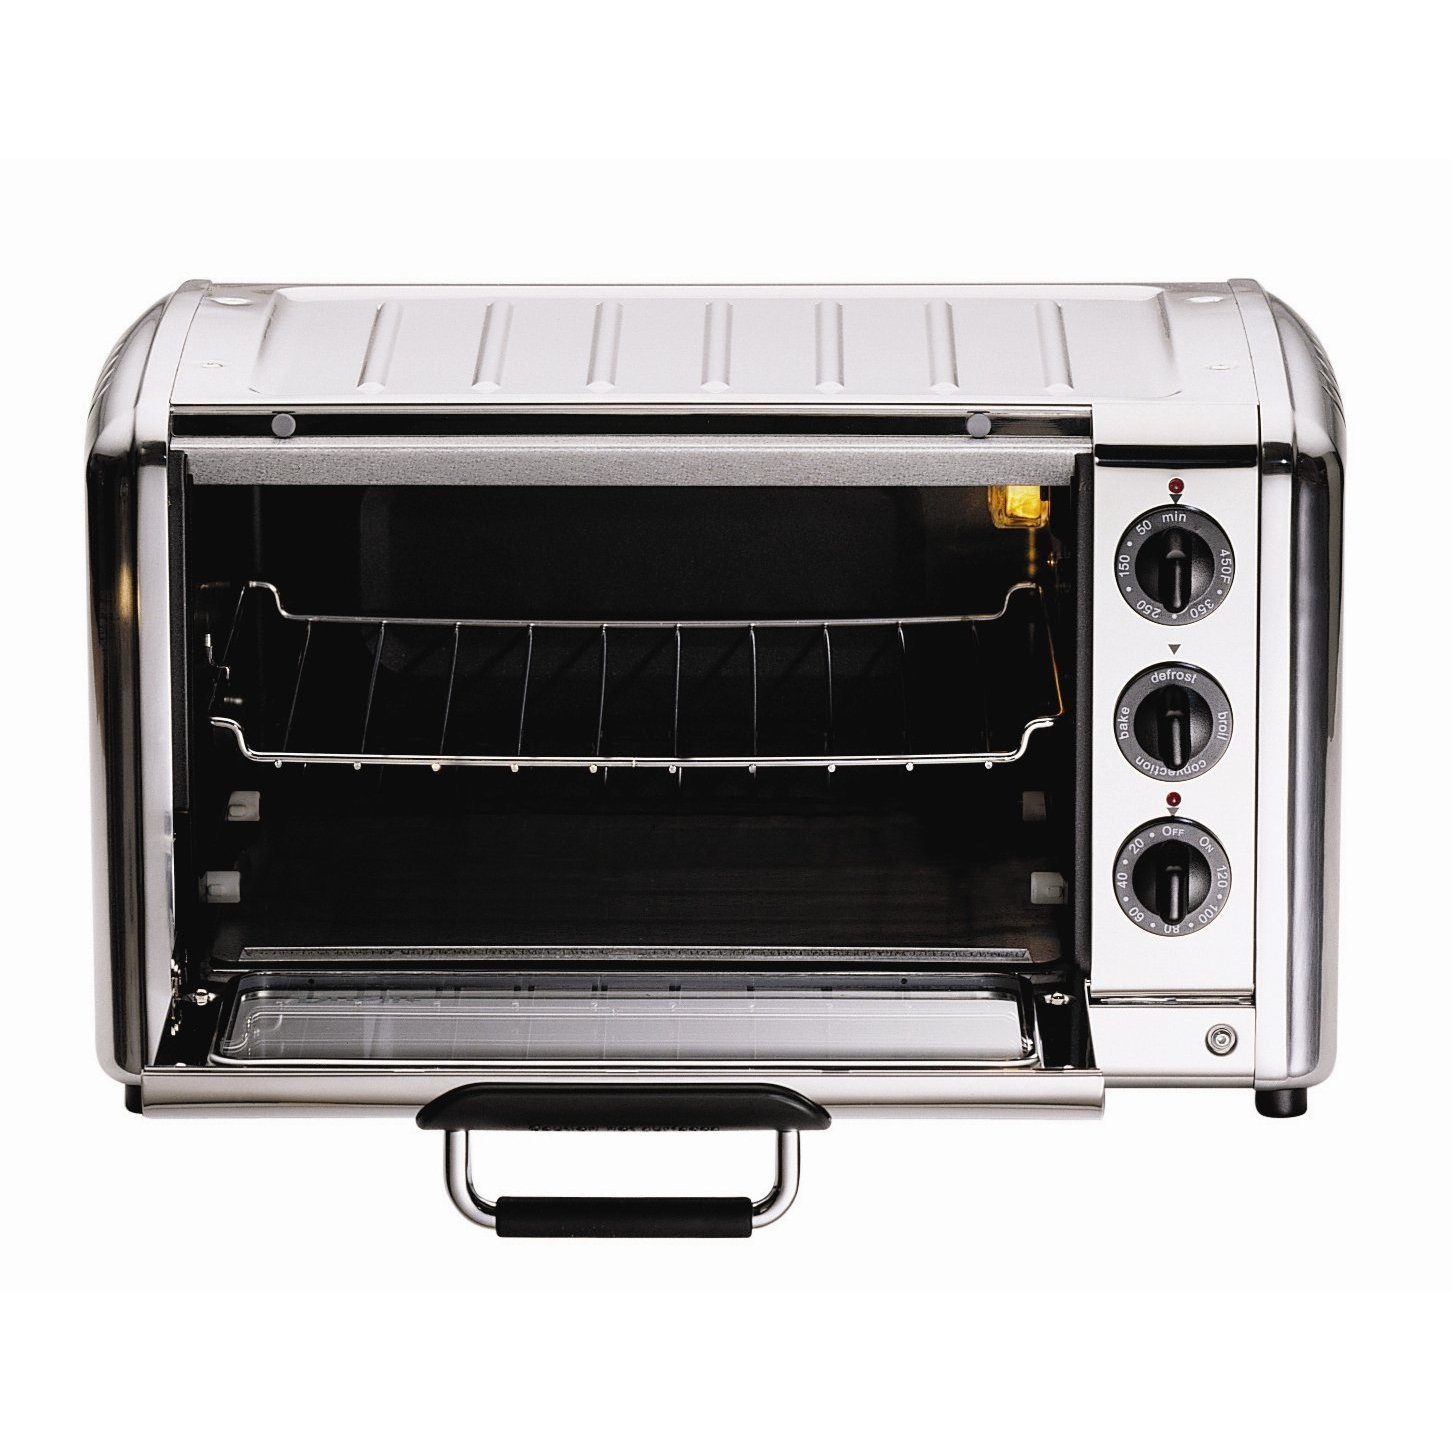 Mini Kitchen Oven ~ Kitchen appliance packages stainless steel mini oven by